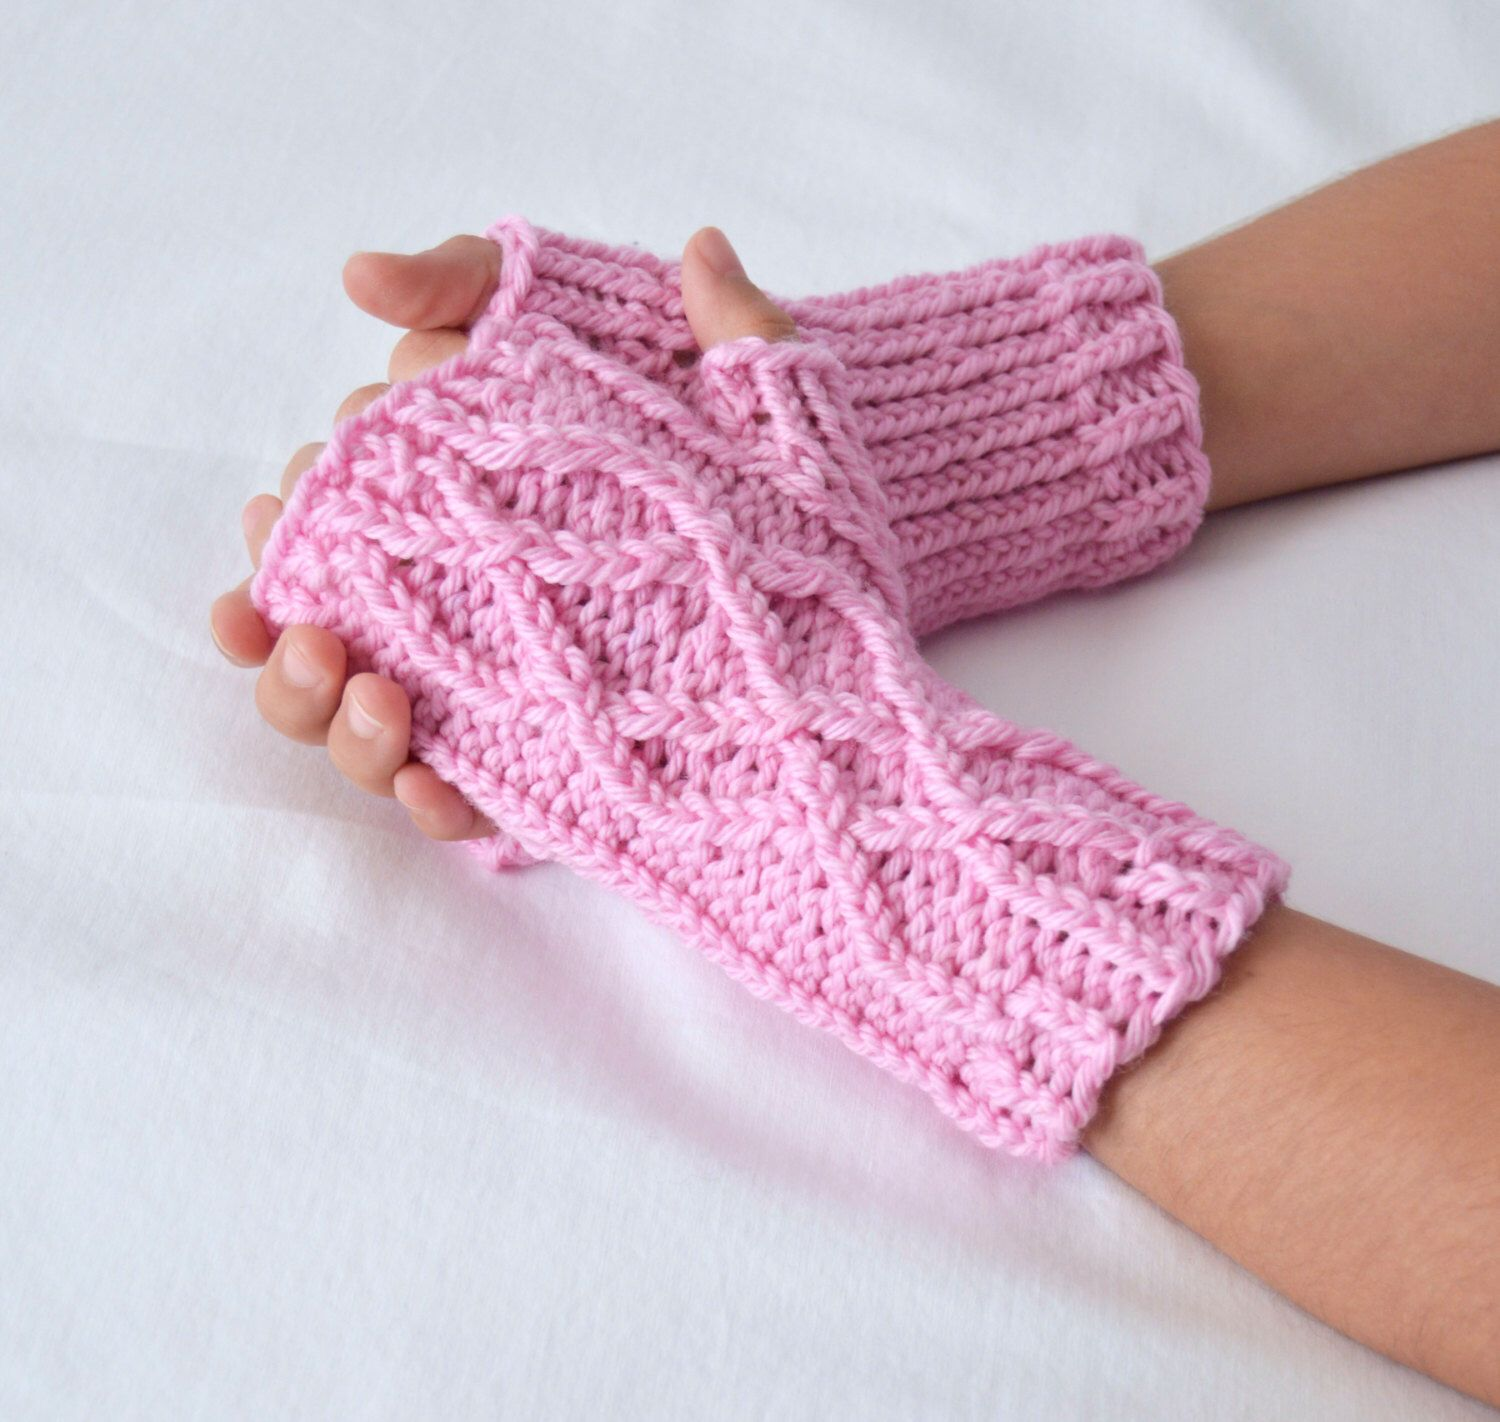 Pink Girls Mittens, Cable Knit, Fingerless Gloves, Kids Knitwear ...